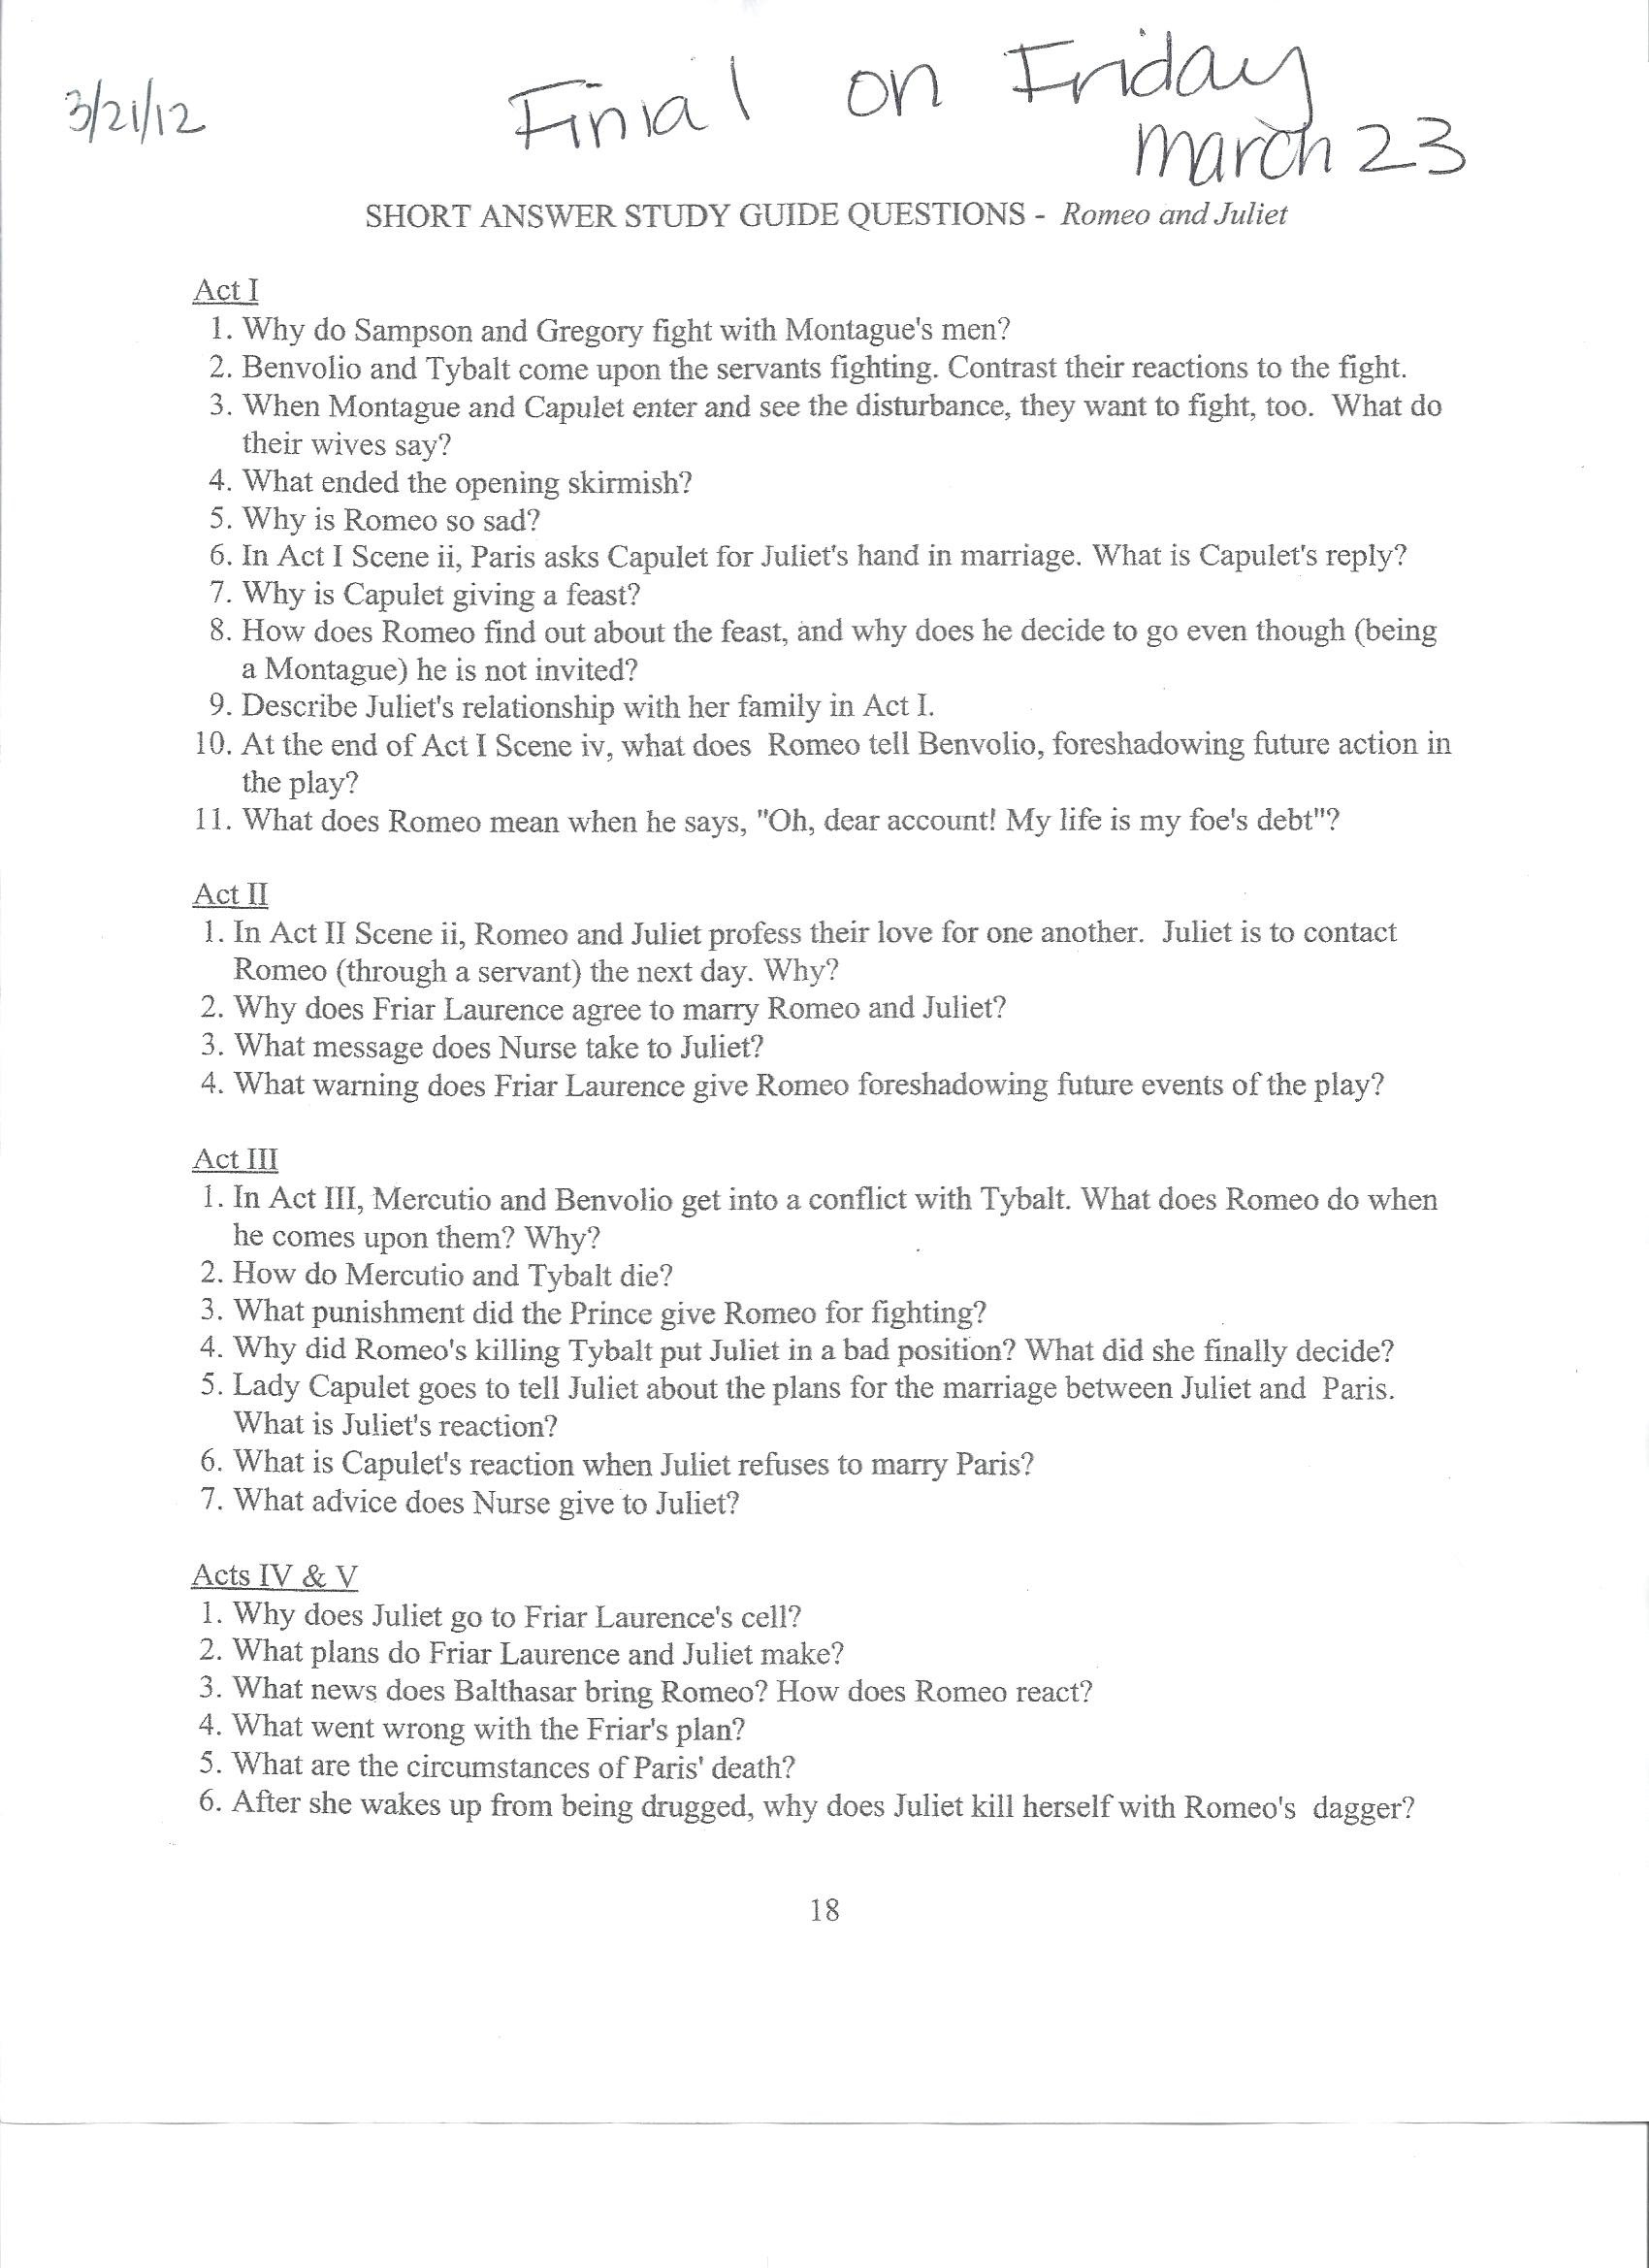 romeo and juliet essay conclusion romeo character analysis essay  romeo and juliet essay outline essay for romeo and juliet romeo romeo and juliet essay ideasromeo